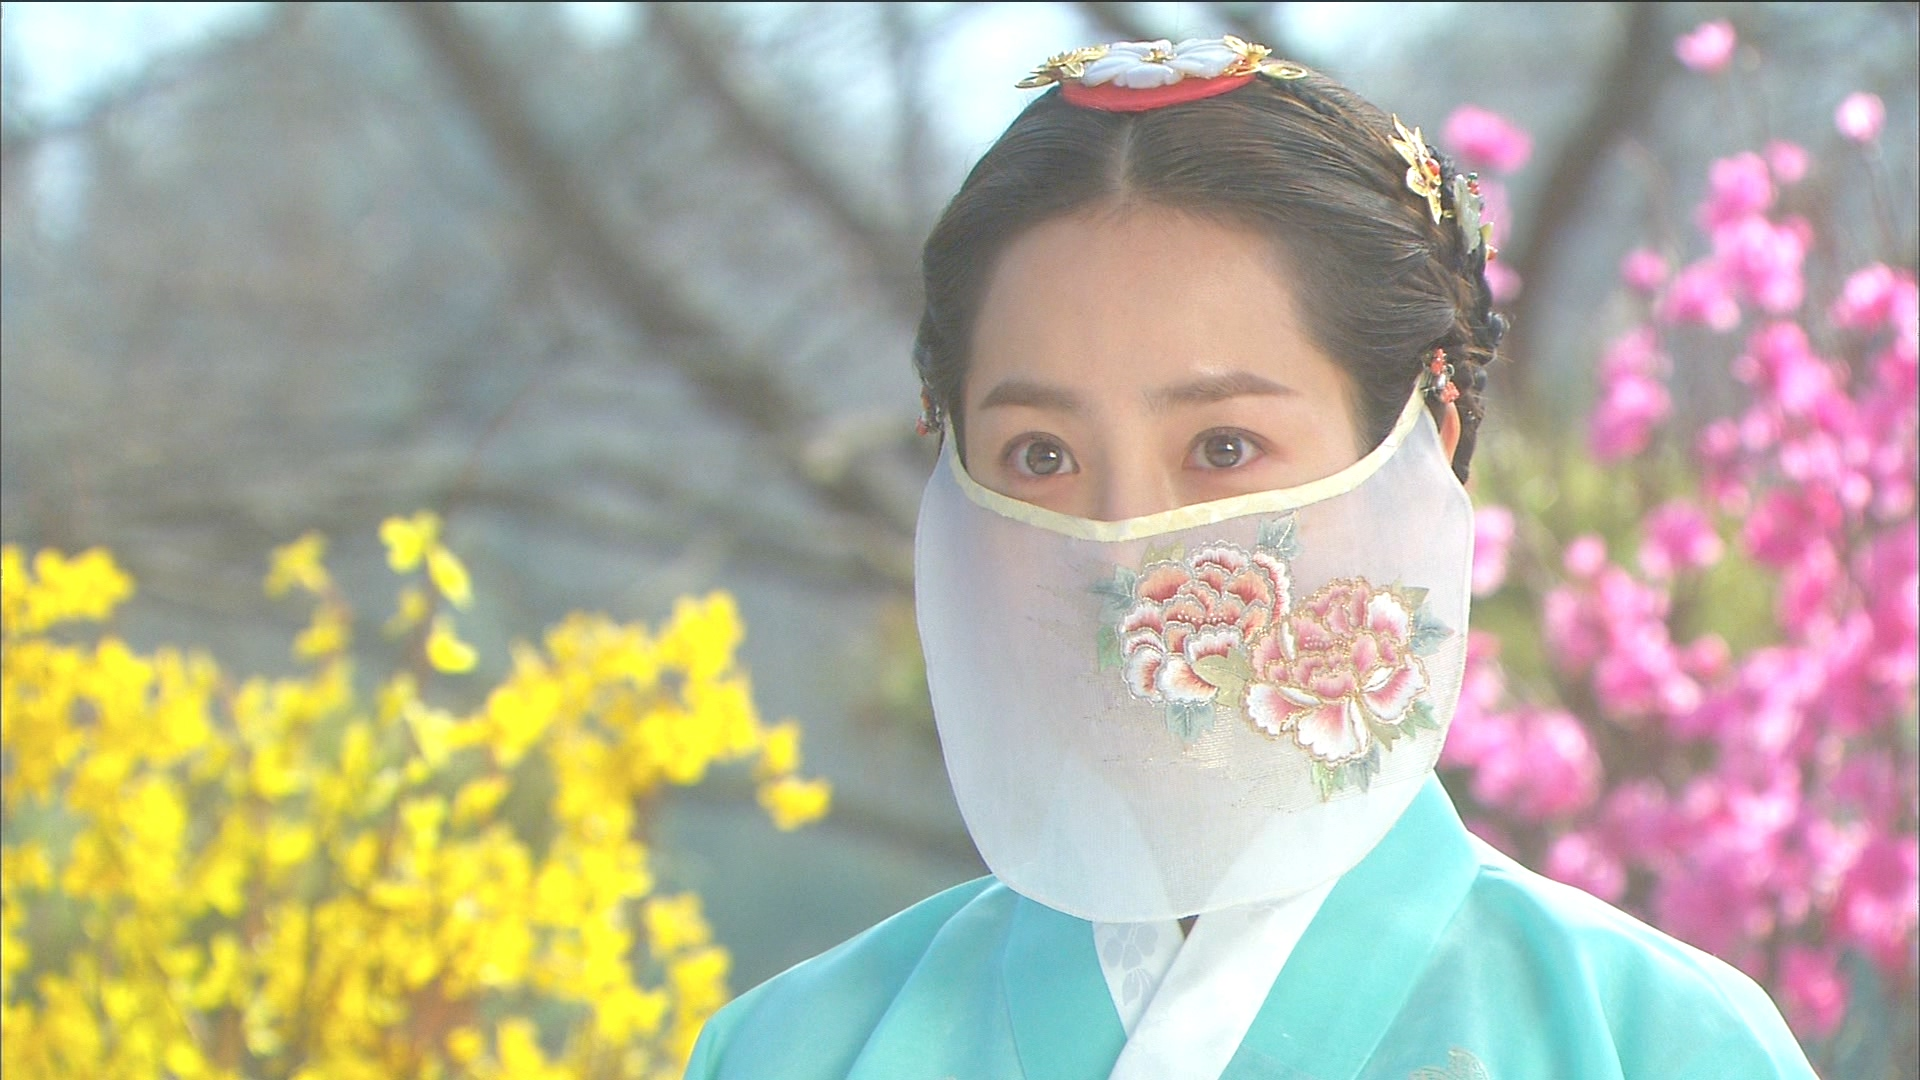 Rooftop Prince Episode 1